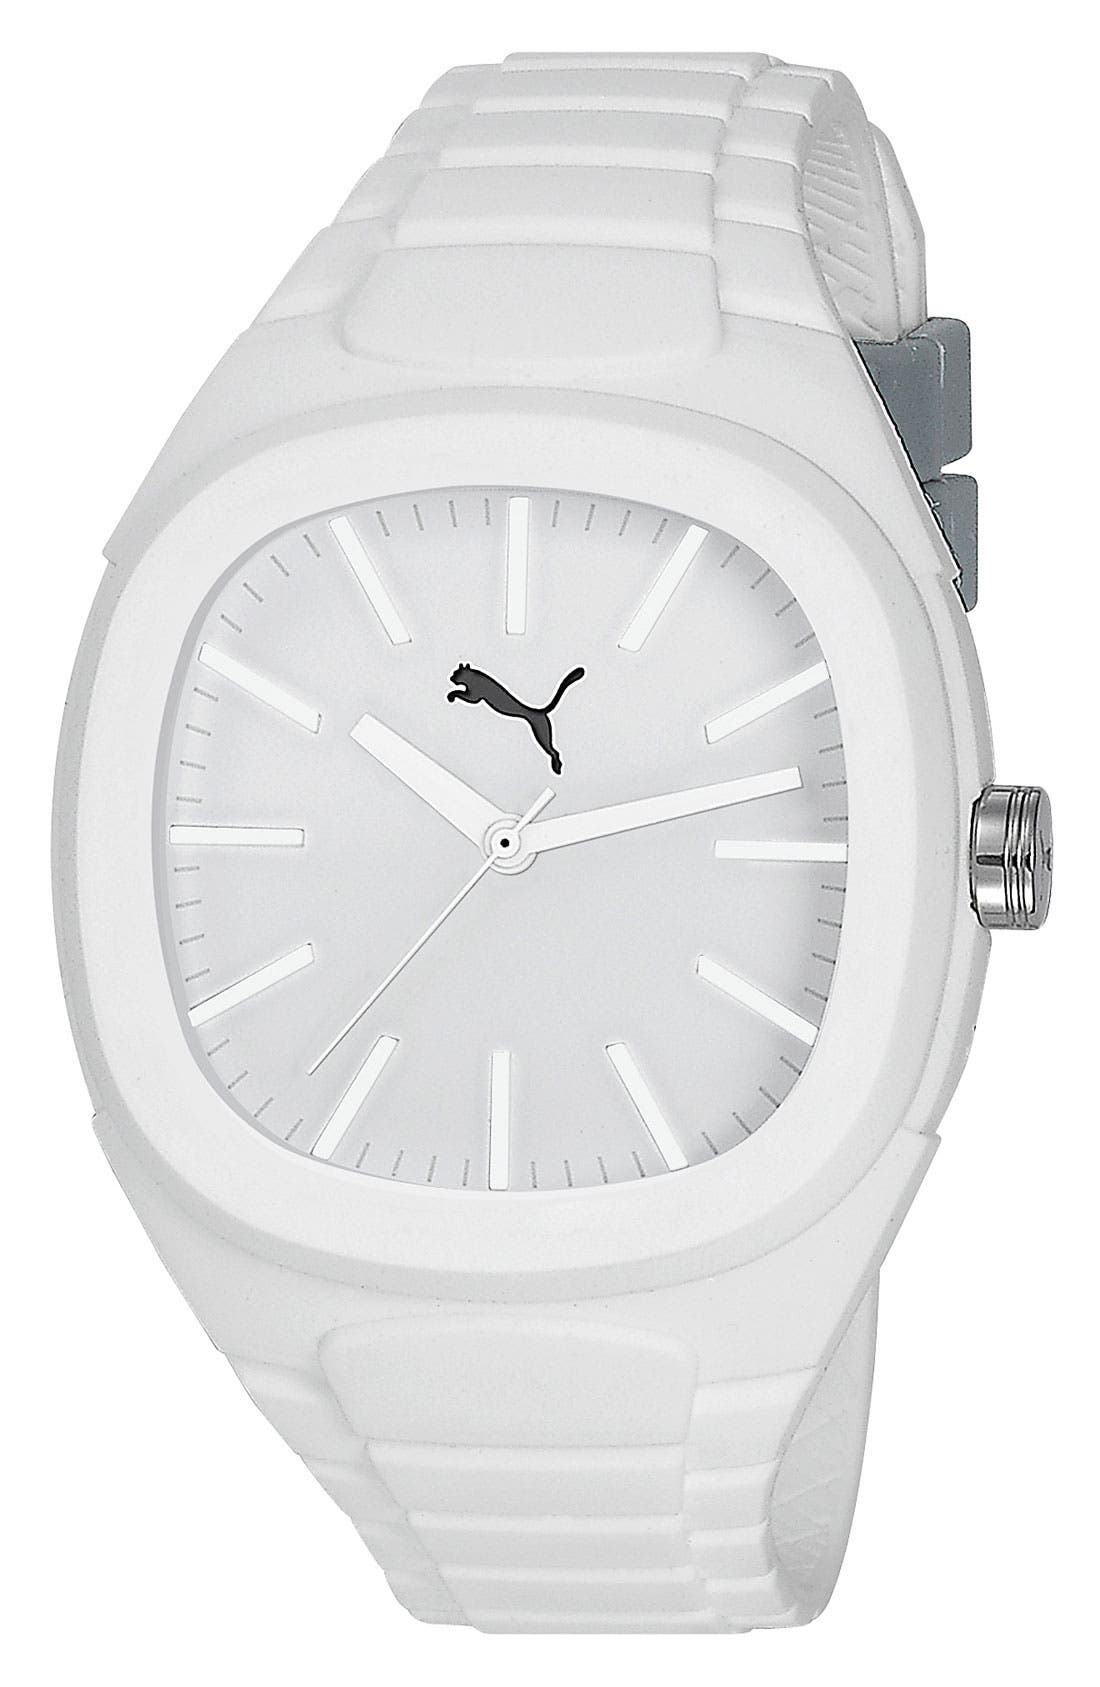 Alternate Image 1 Selected - PUMA 'Bubblegum - Large' Silicone Watch, 40mm x 44mm